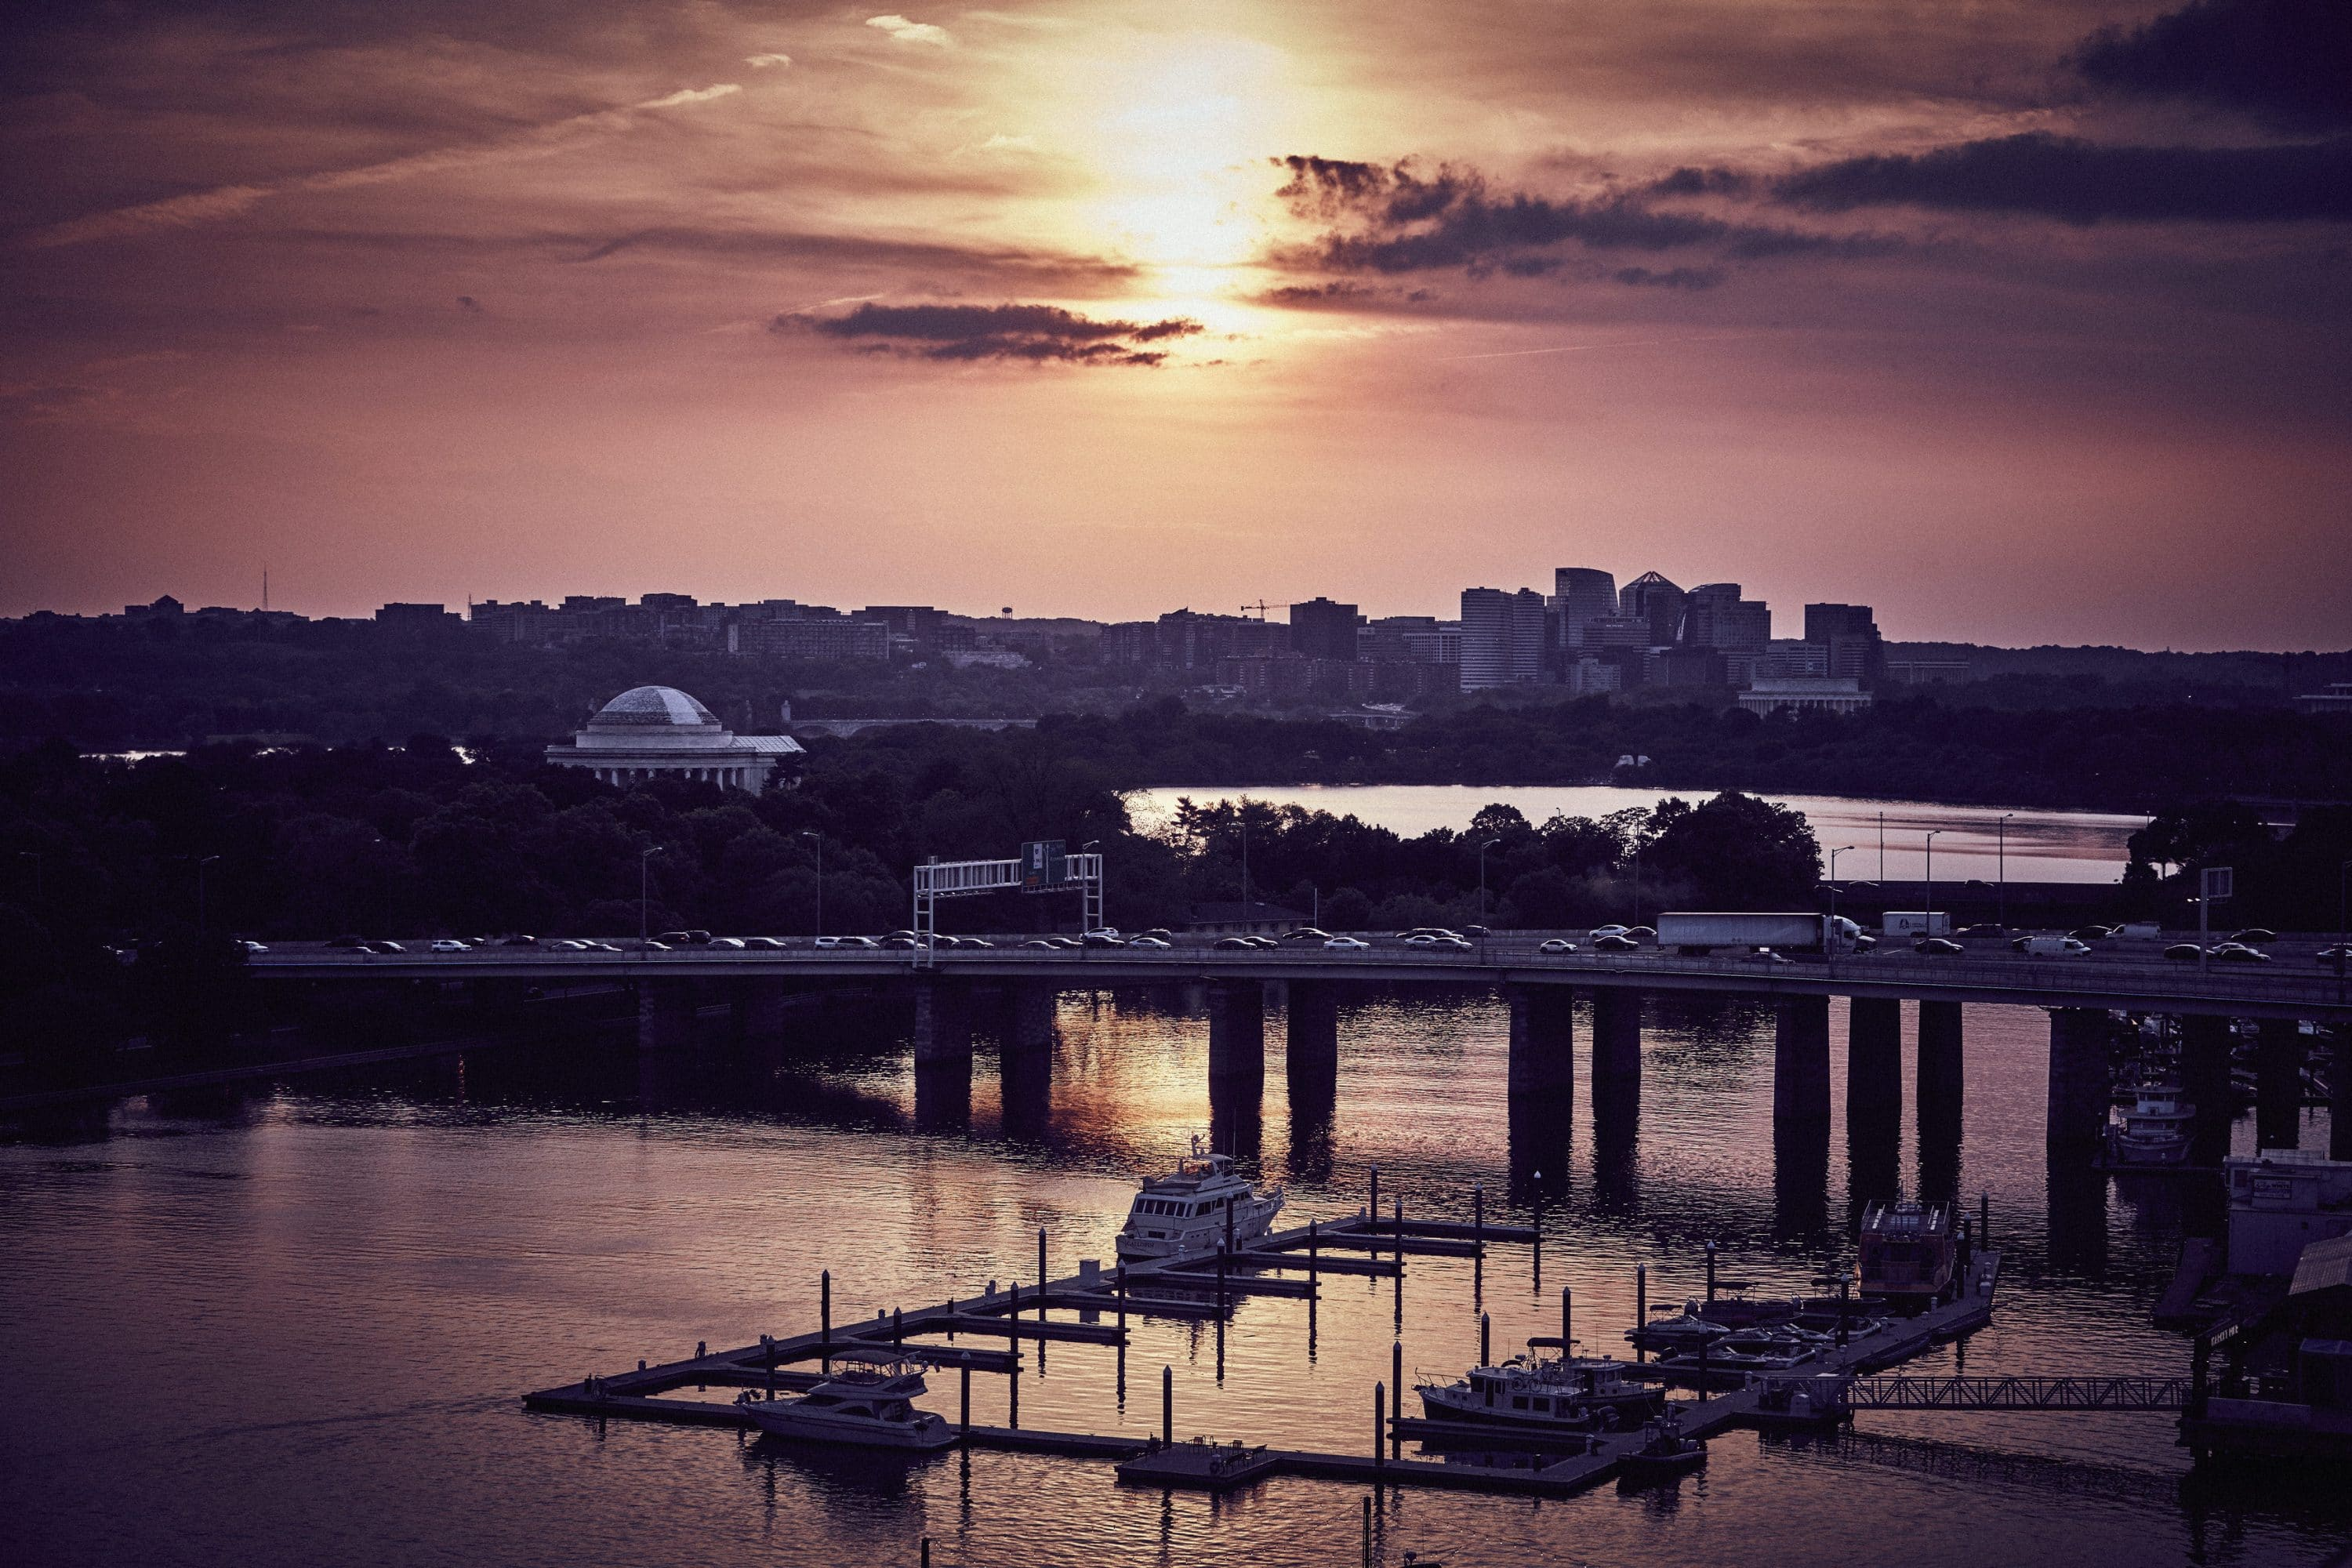 Sunset on the Potomac